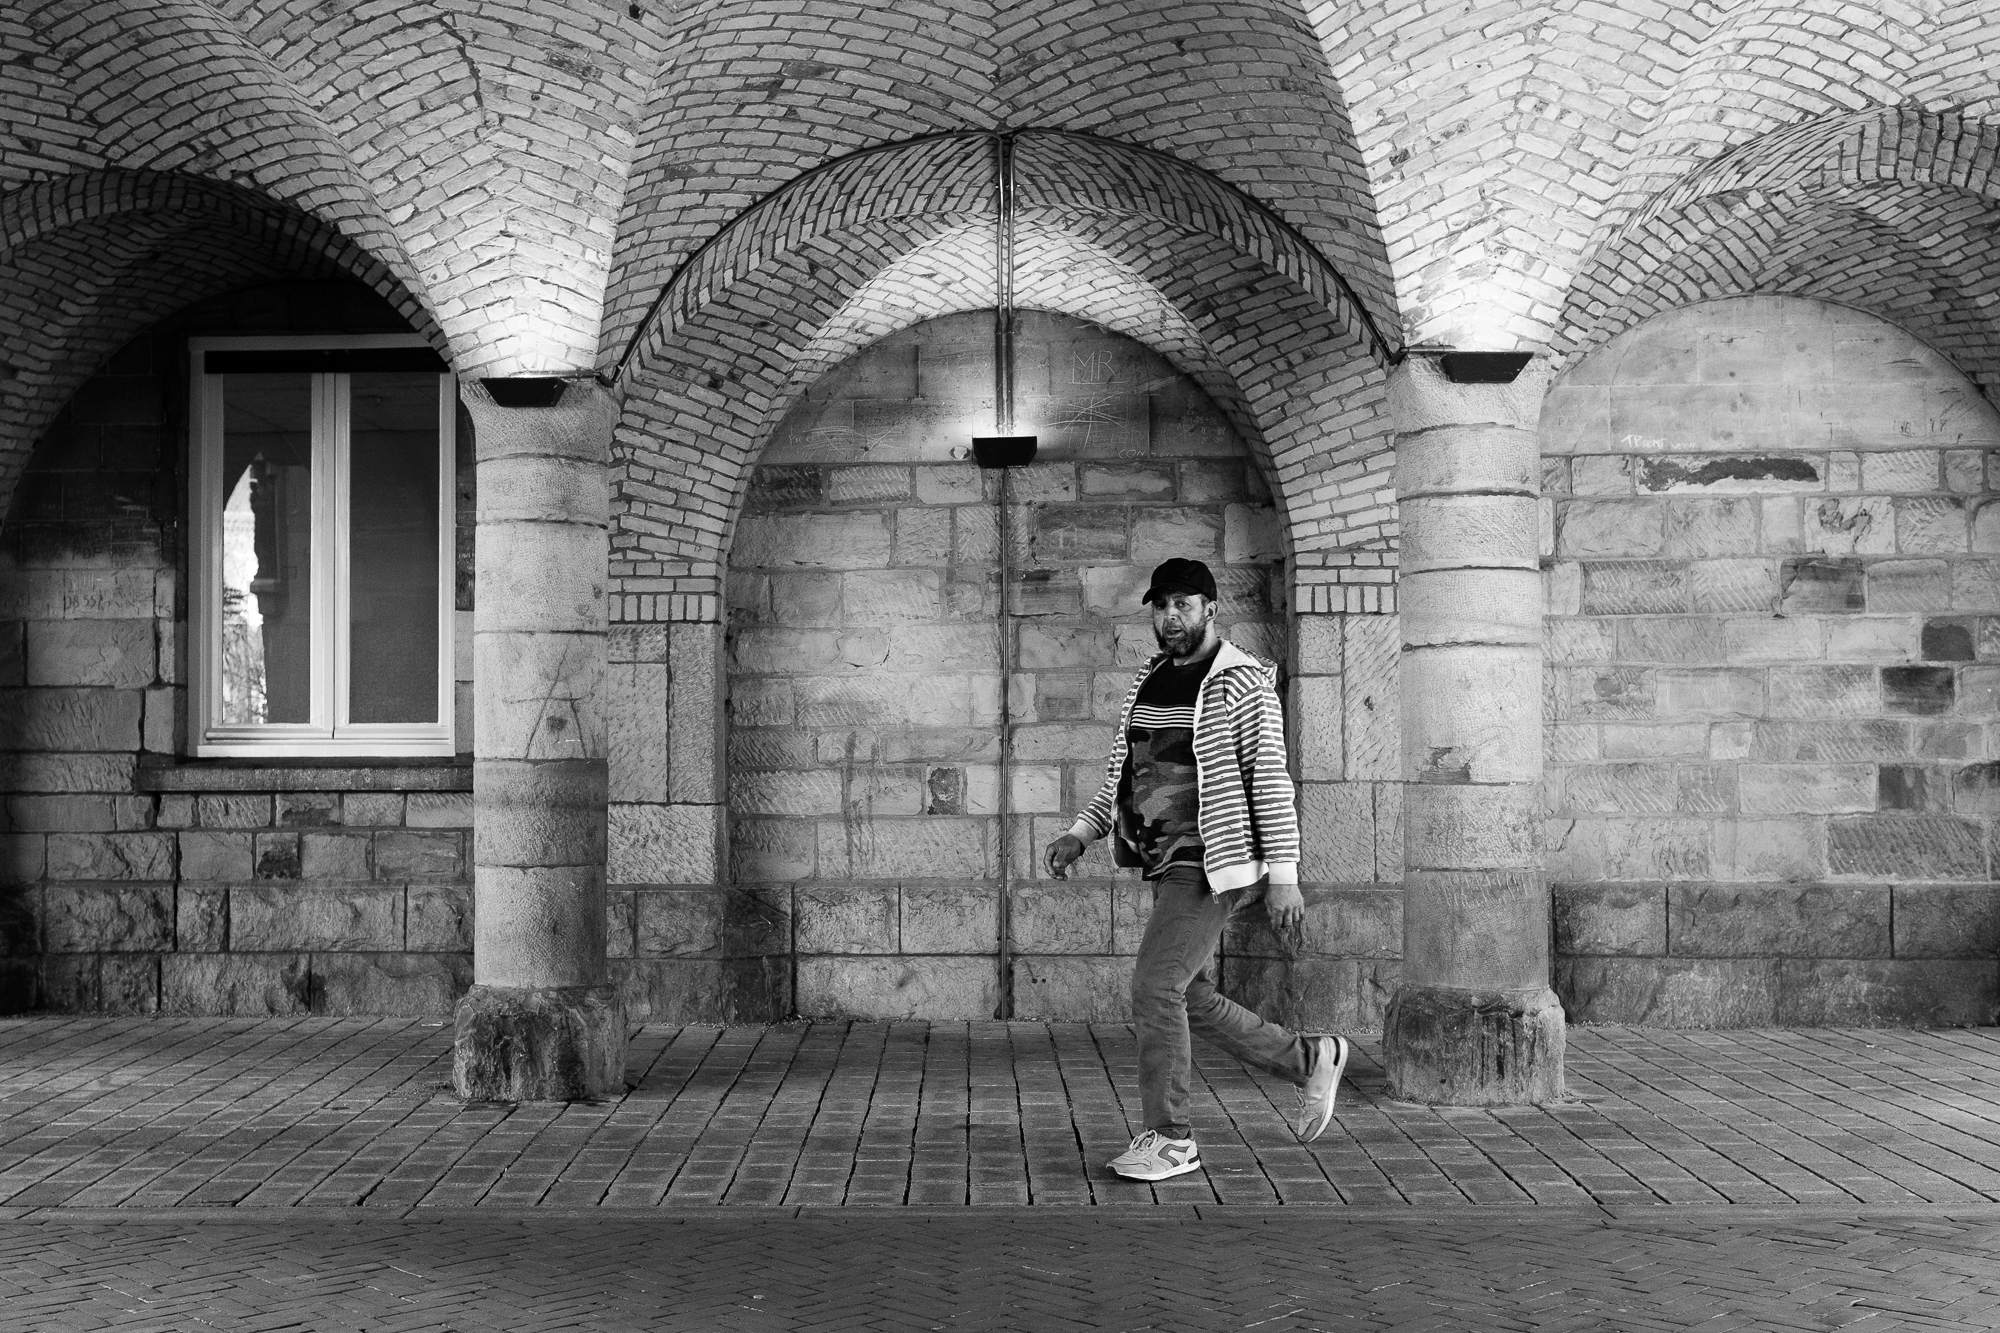 A man walkung through an overpass with arches in Roermond